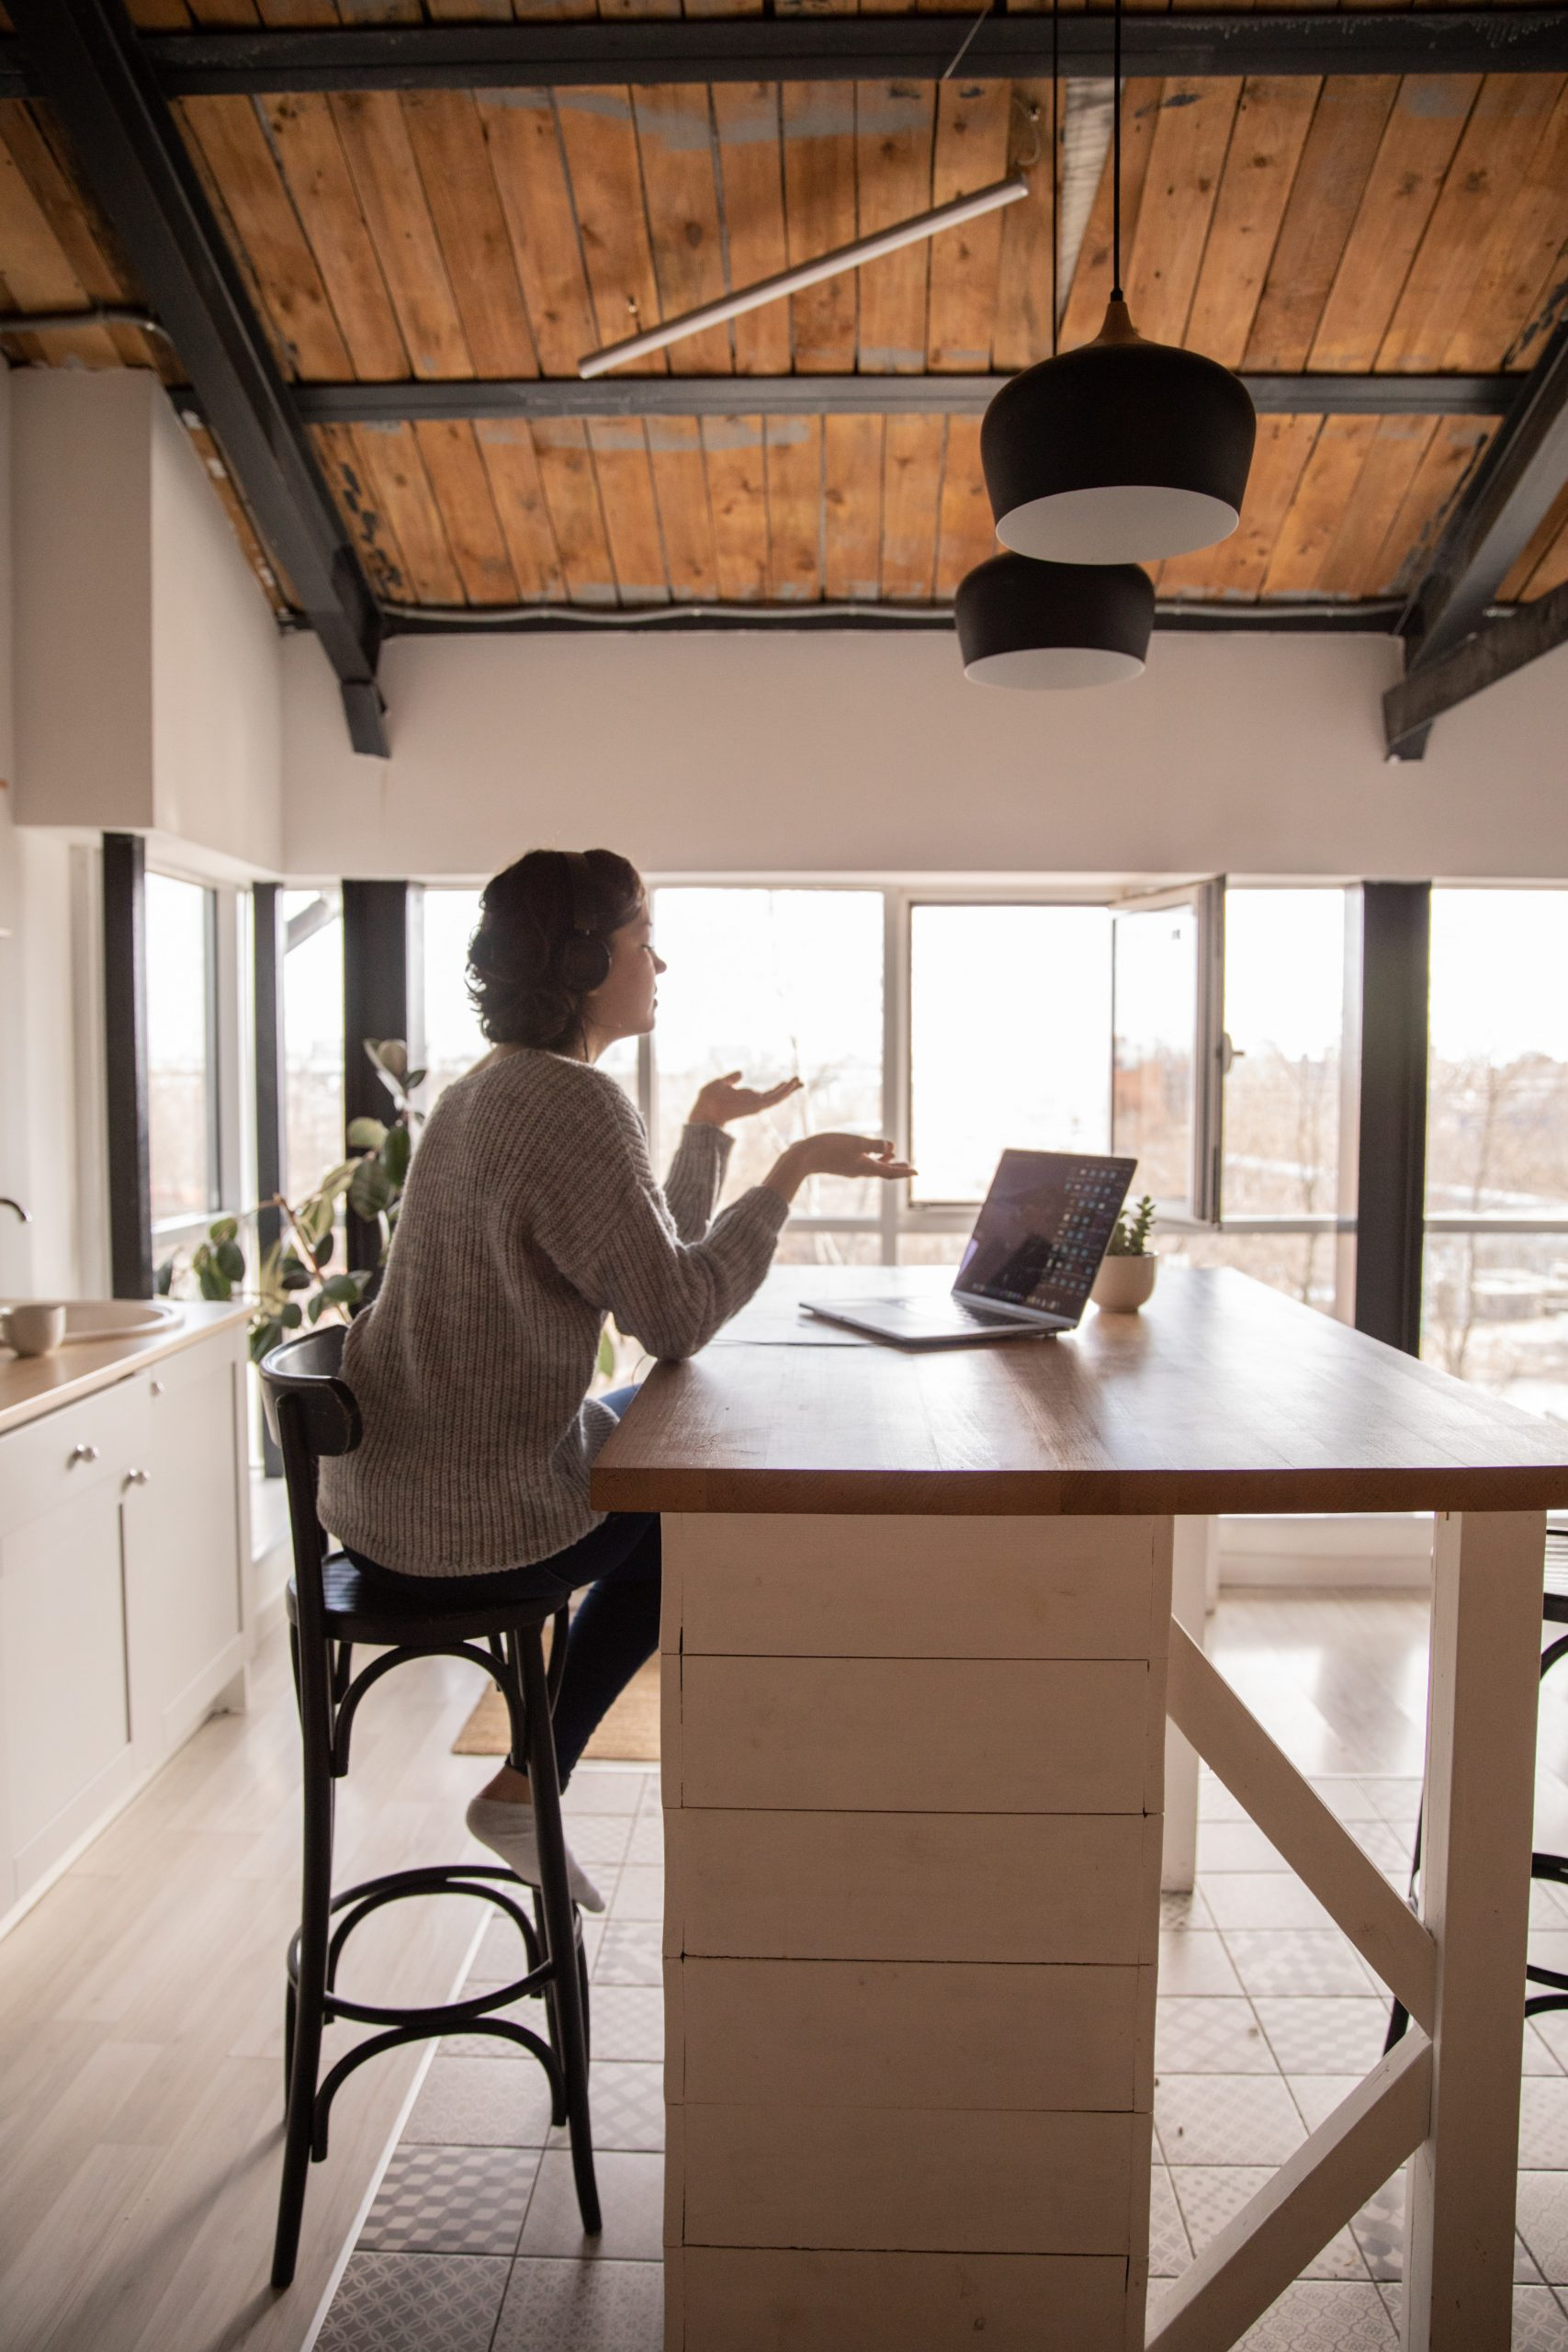 a woman having a conversation on her laptop in the kitchen